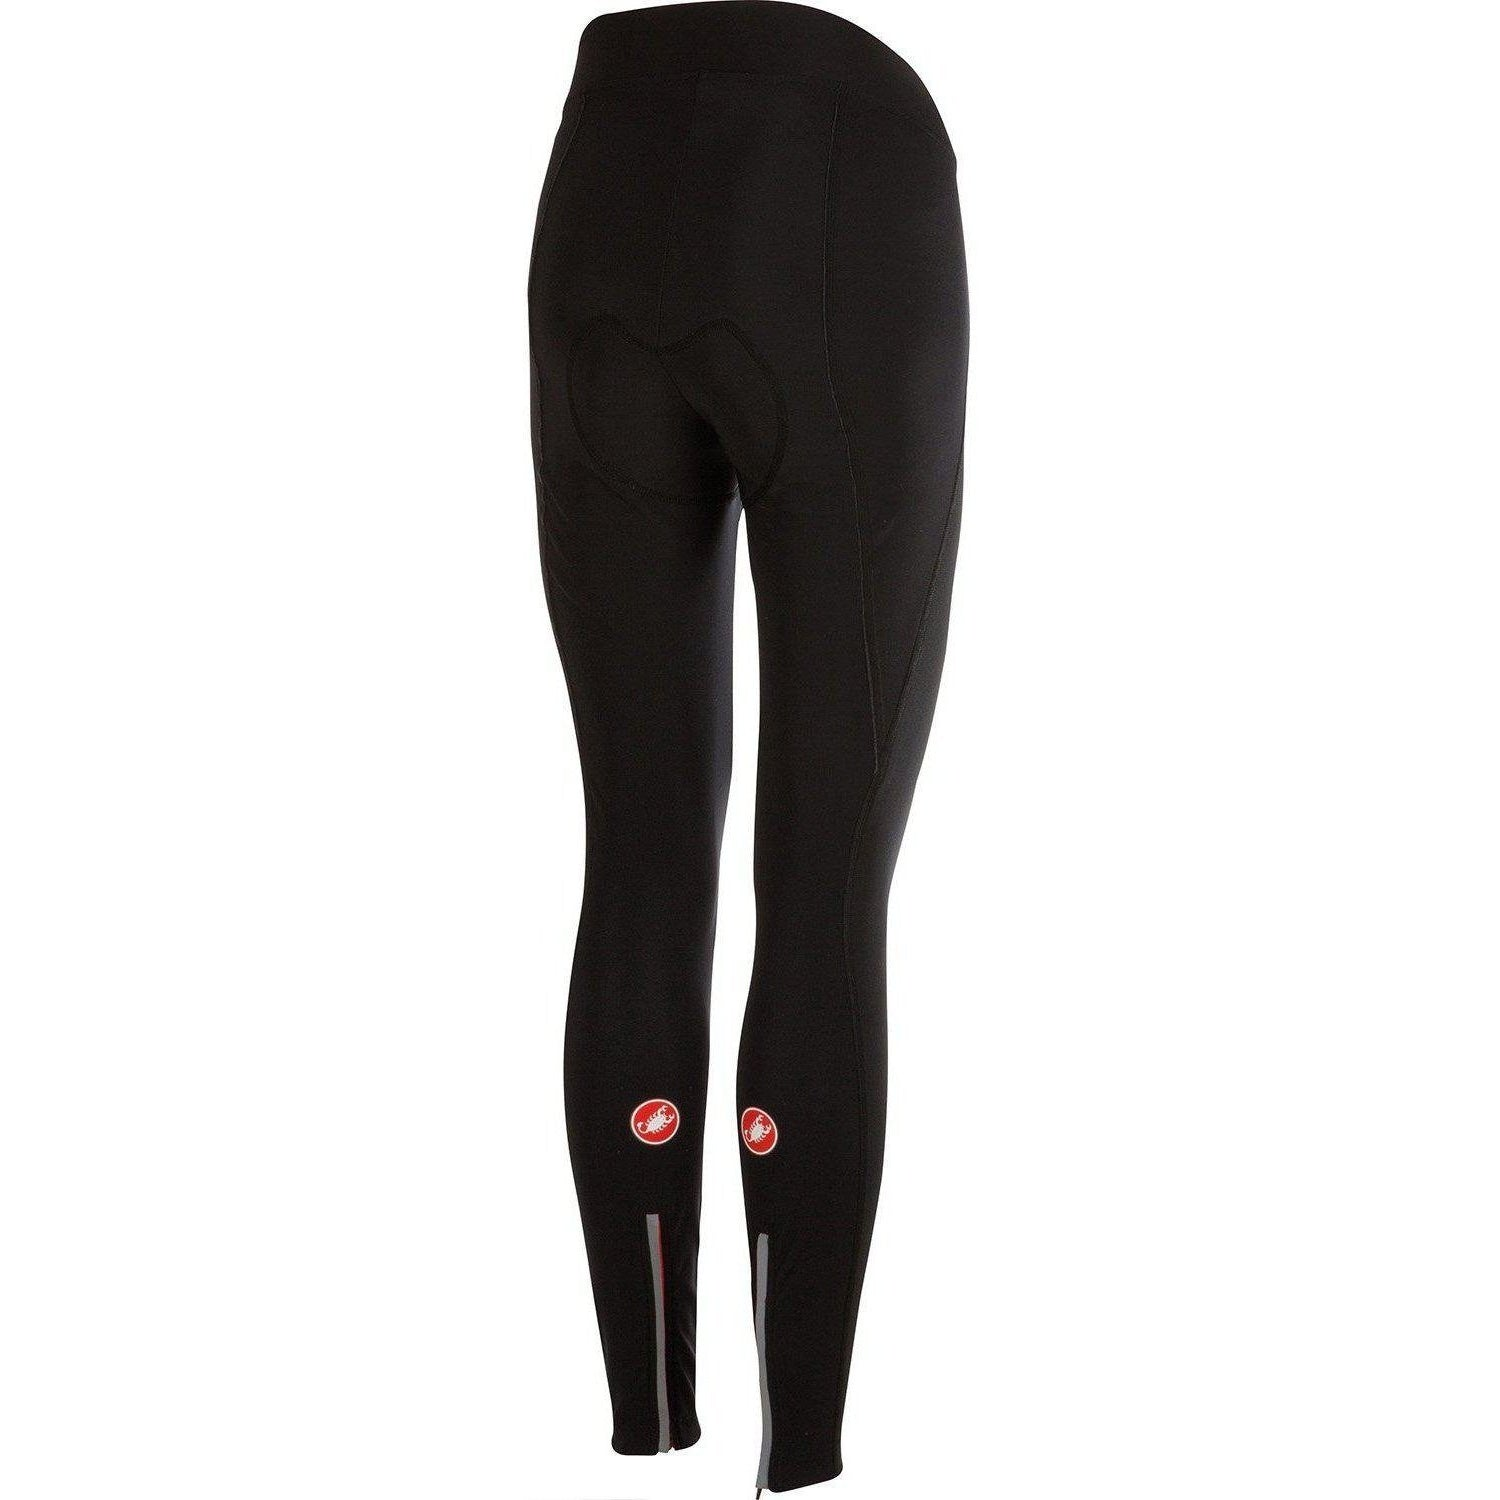 Castelli-Castelli Meno Wind Women's Tights--saddleback-elite-performance-cycling